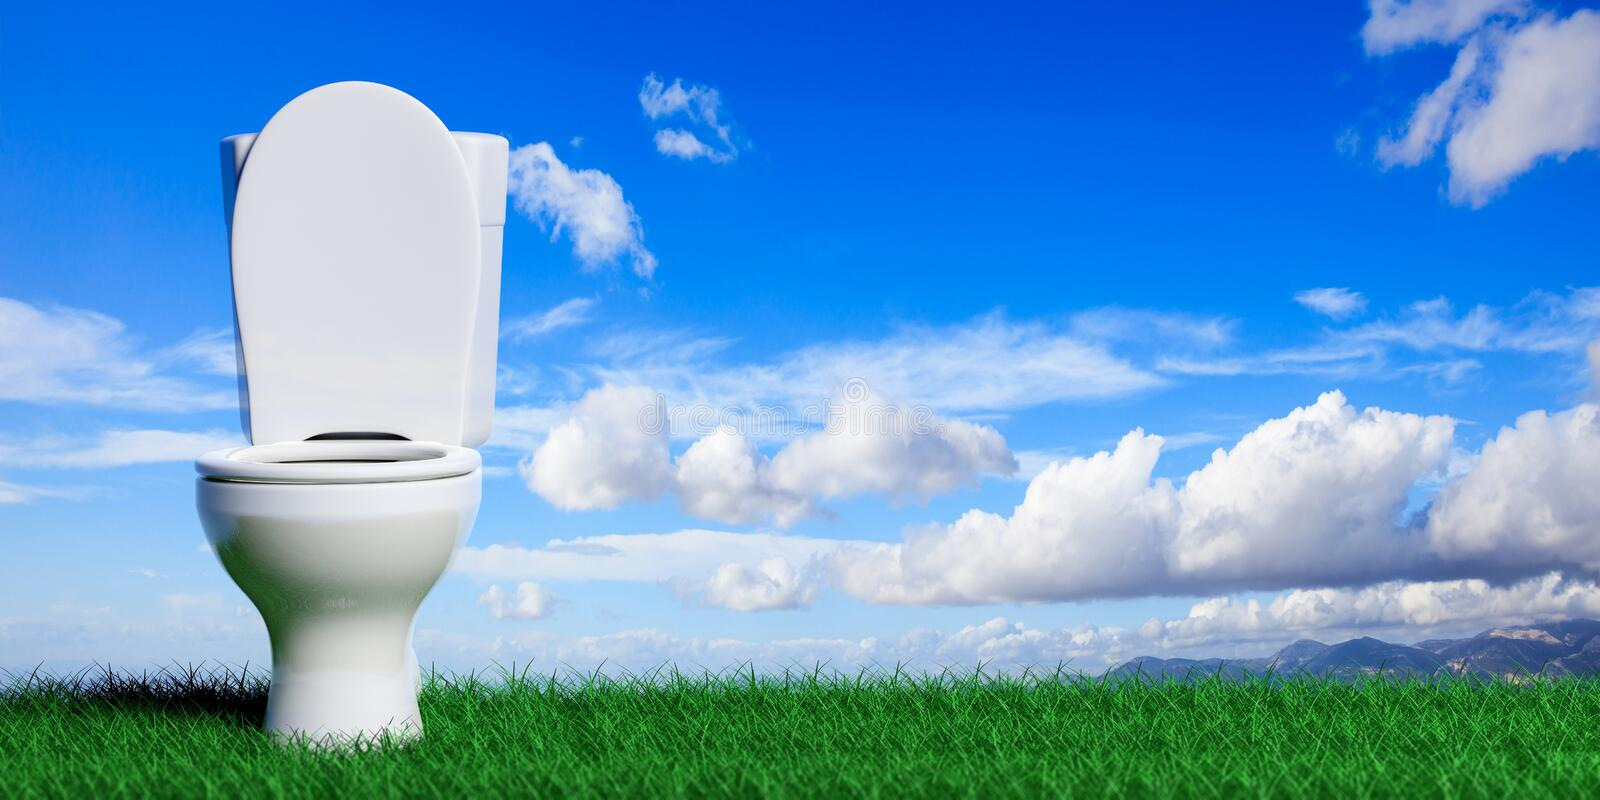 White toilet bowl on blue sky and grass background, copy space. 3d illustration. White toilet bowl on blue sky and green grass background, copy space. 3d vector illustration